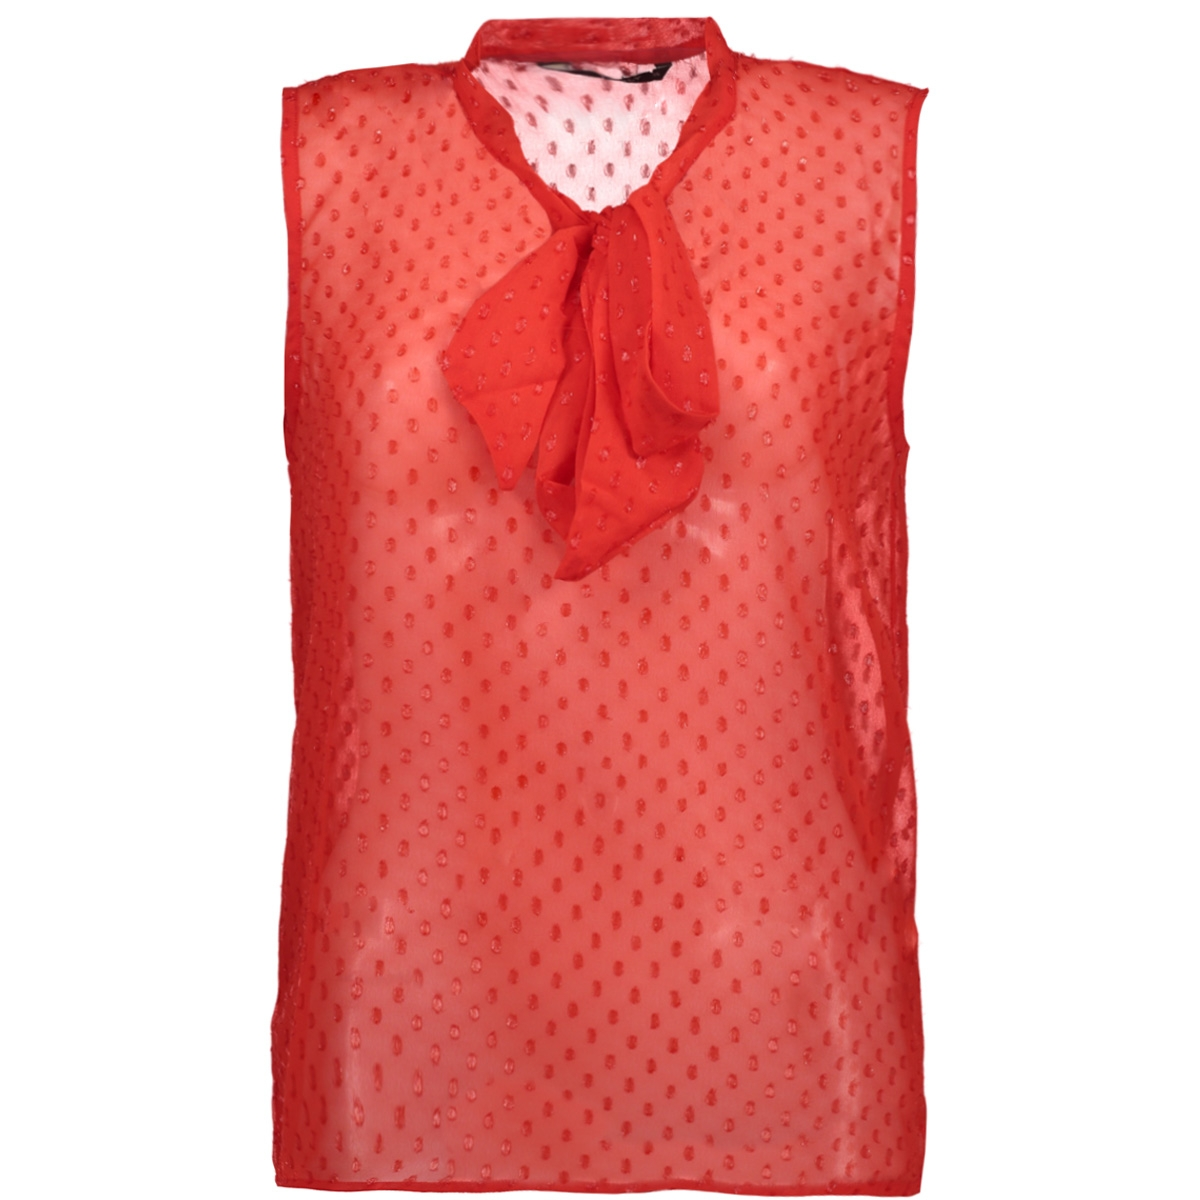 onladrianna s/l bow top wvn 15145196 only top high risk red